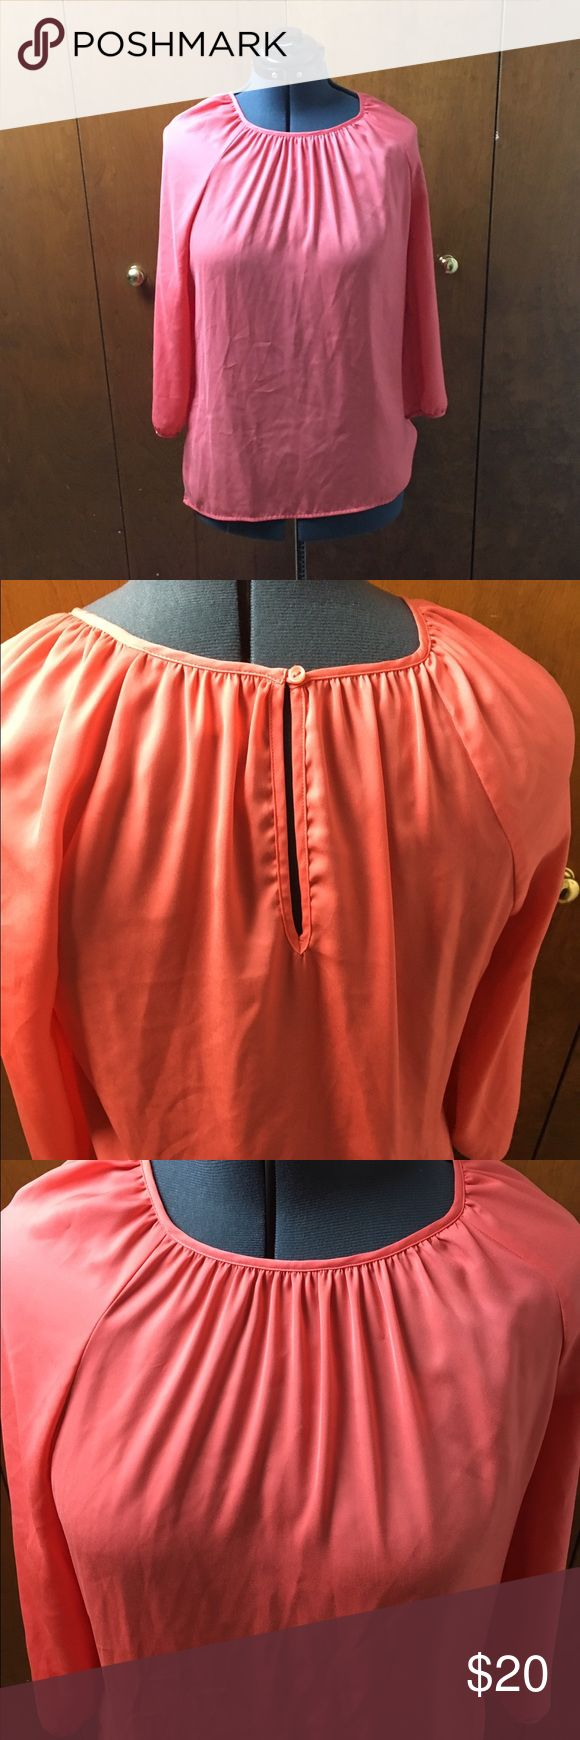 Old Navy Coral Blouse Size Large Such a pretty color. 3/4 length sleeve with the key hole in the back. Color is a coral from Old Navy Old Navy Tops Blouses